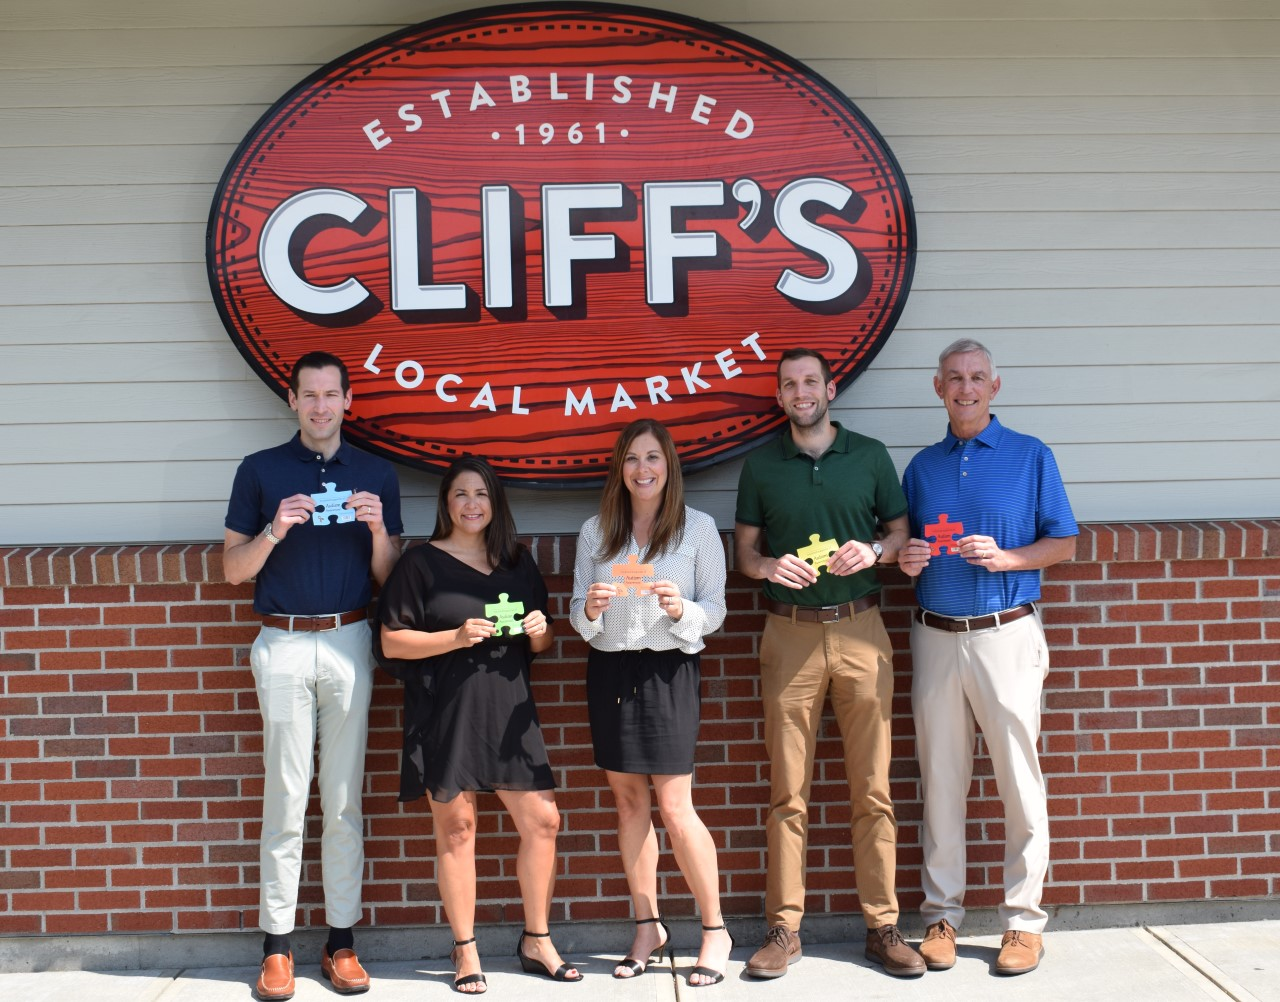 Partnership with Cliff's Local Market